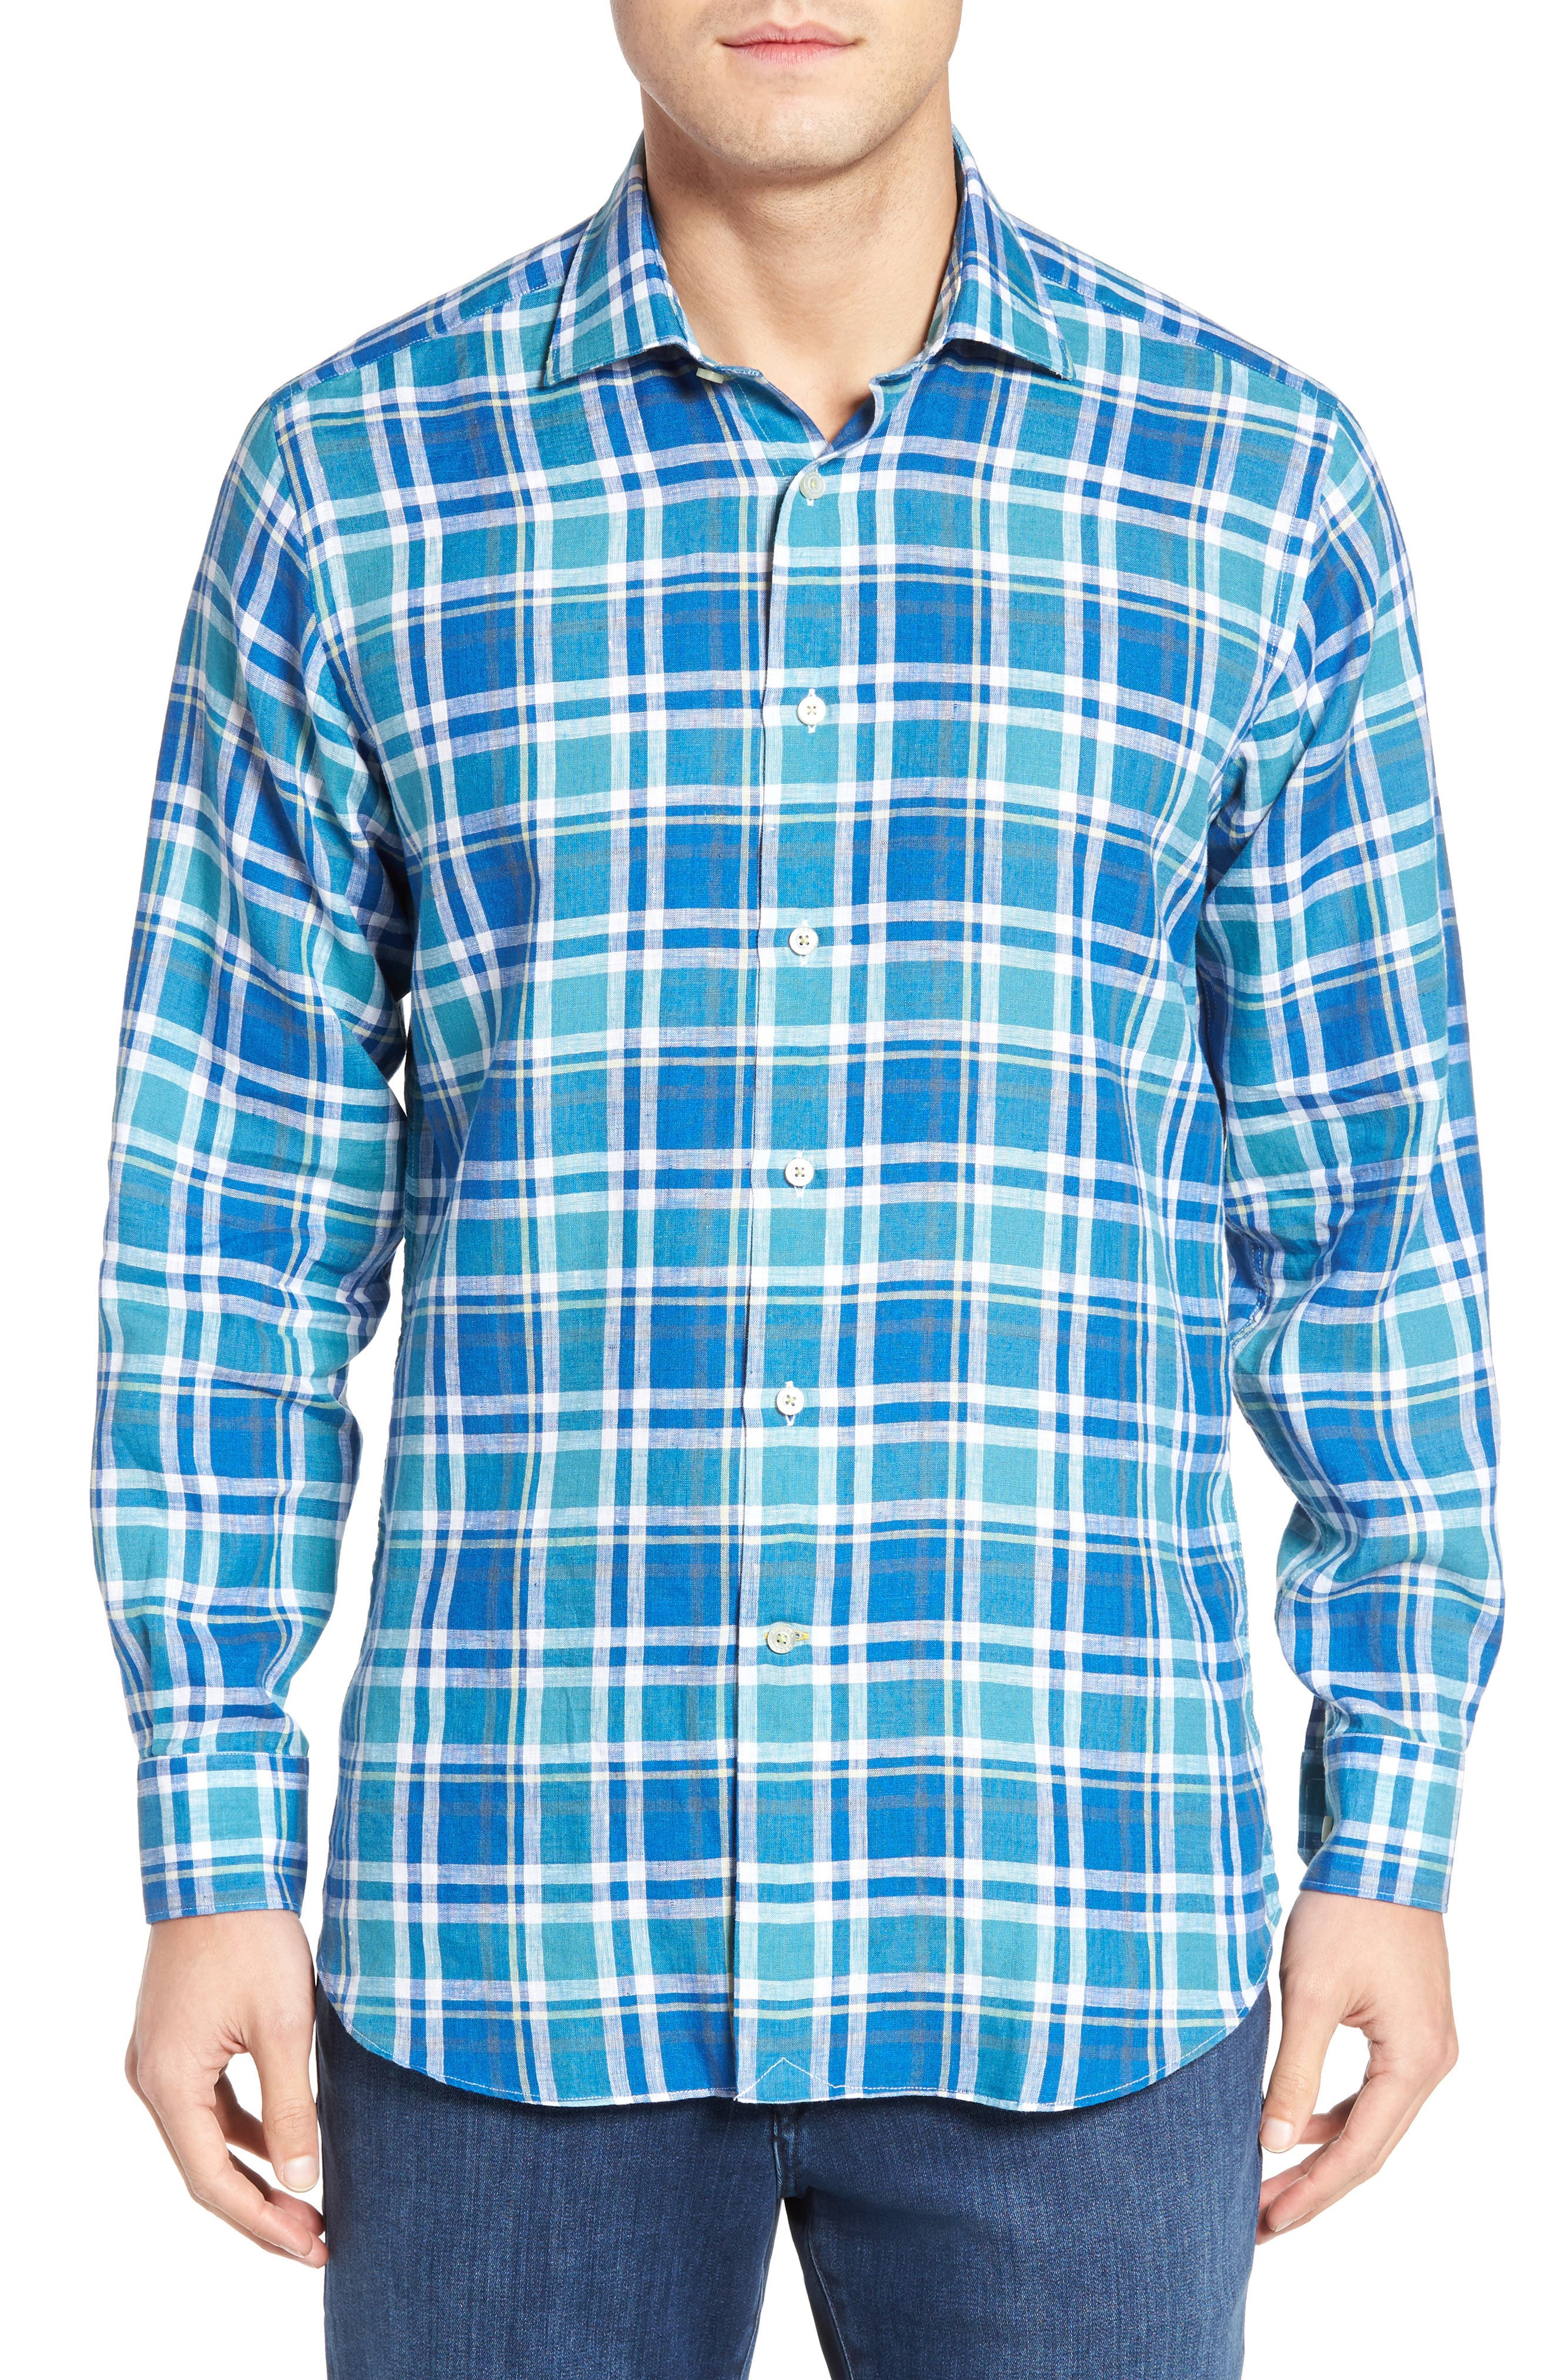 Crespi IV Tailored Fit Sport Shirt,                             Main thumbnail 1, color,                             Teal